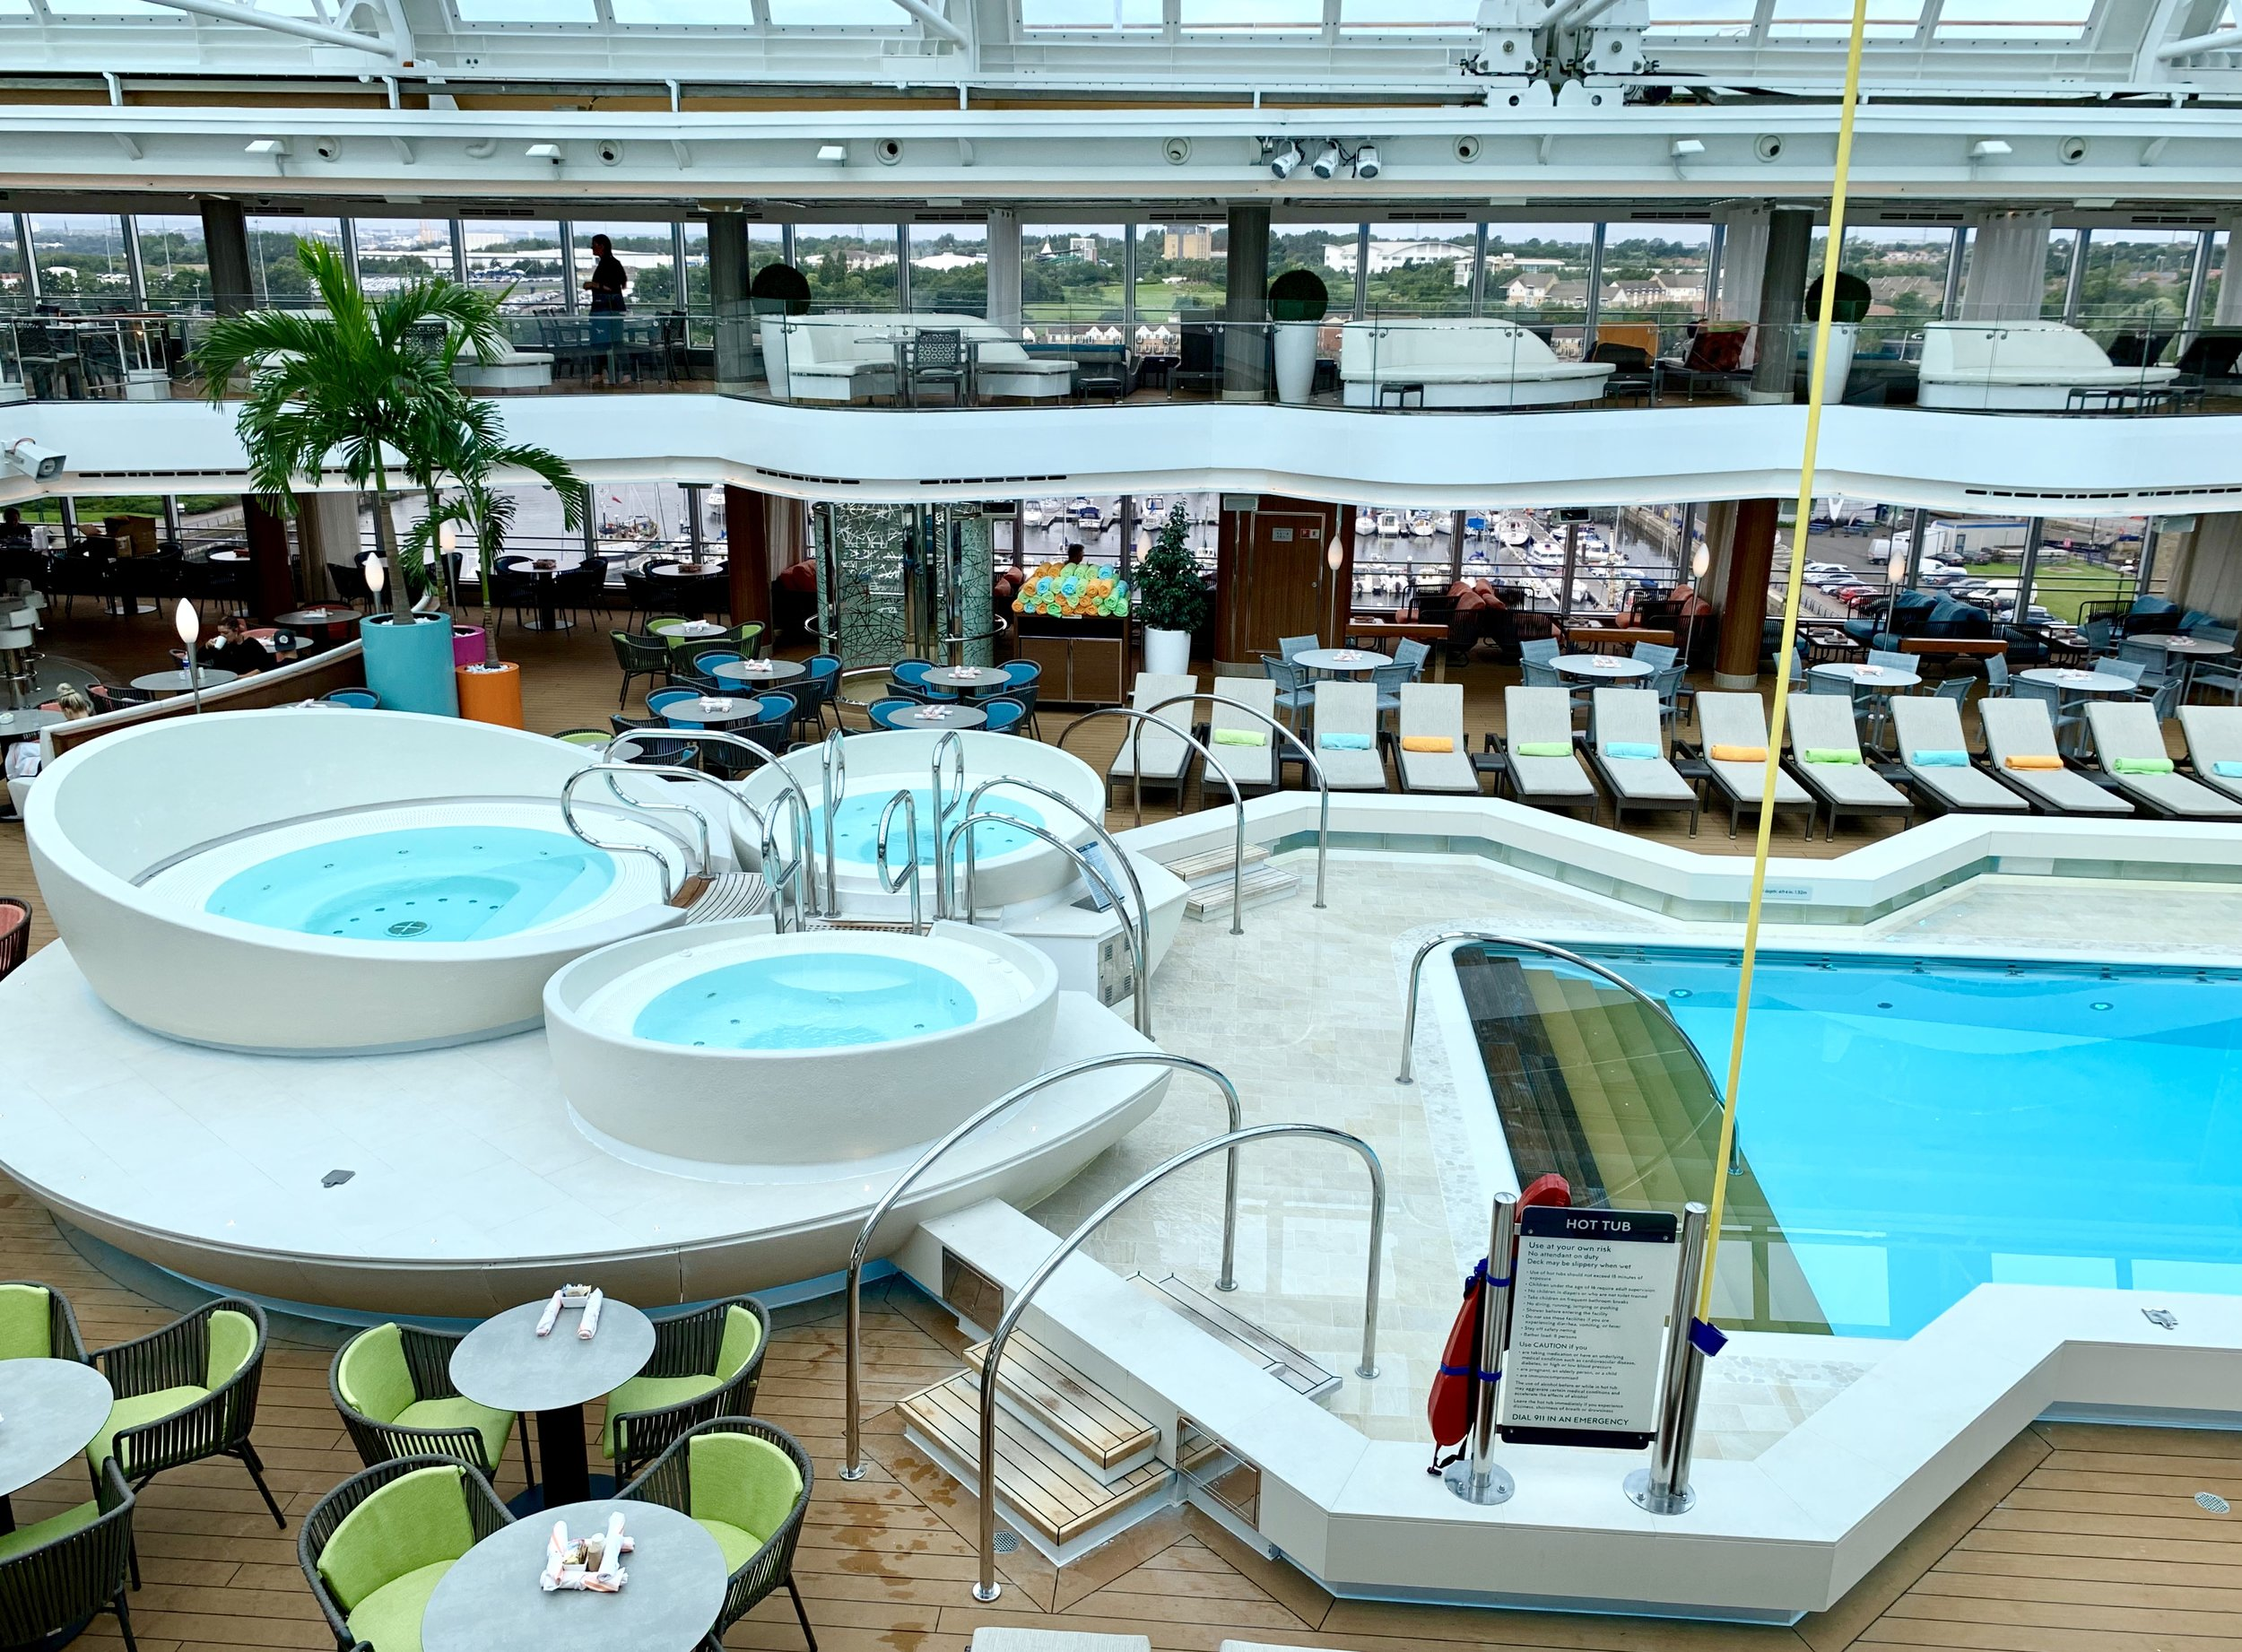 Looking down on the pool from the Panorama mezzanine level.